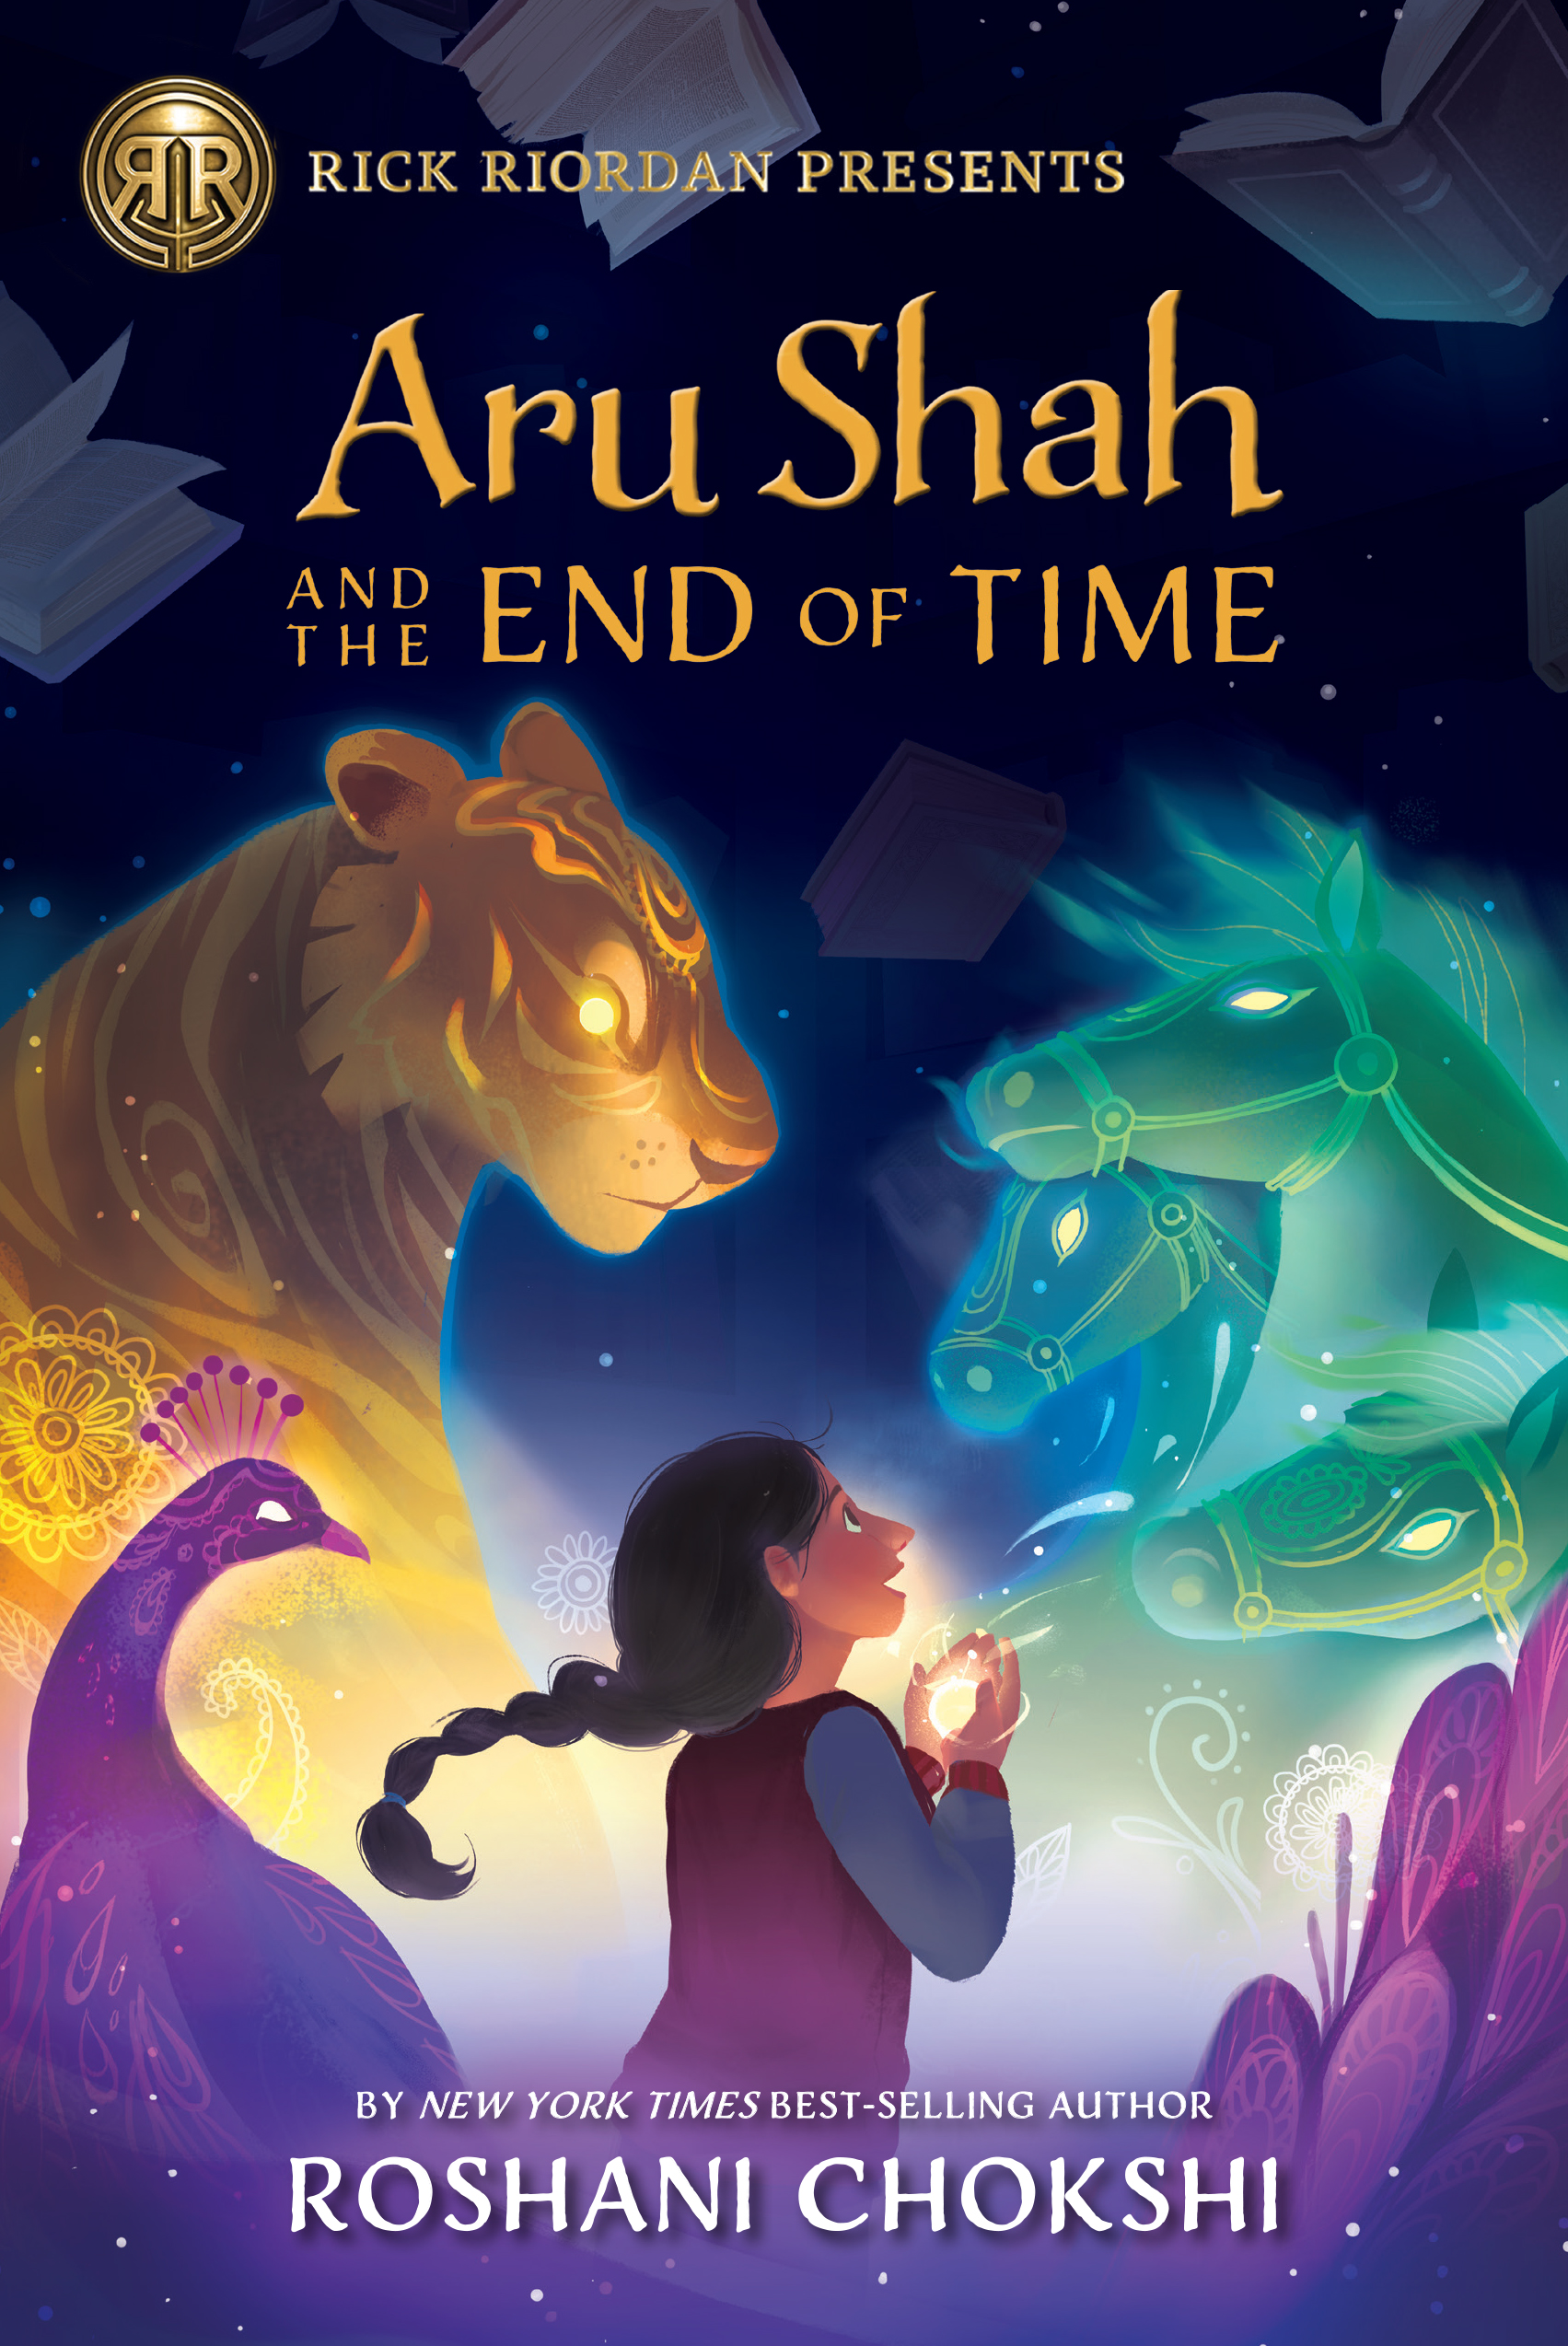 Aru Shah and the End of Time by Roshani Chokshi | SLJ Review